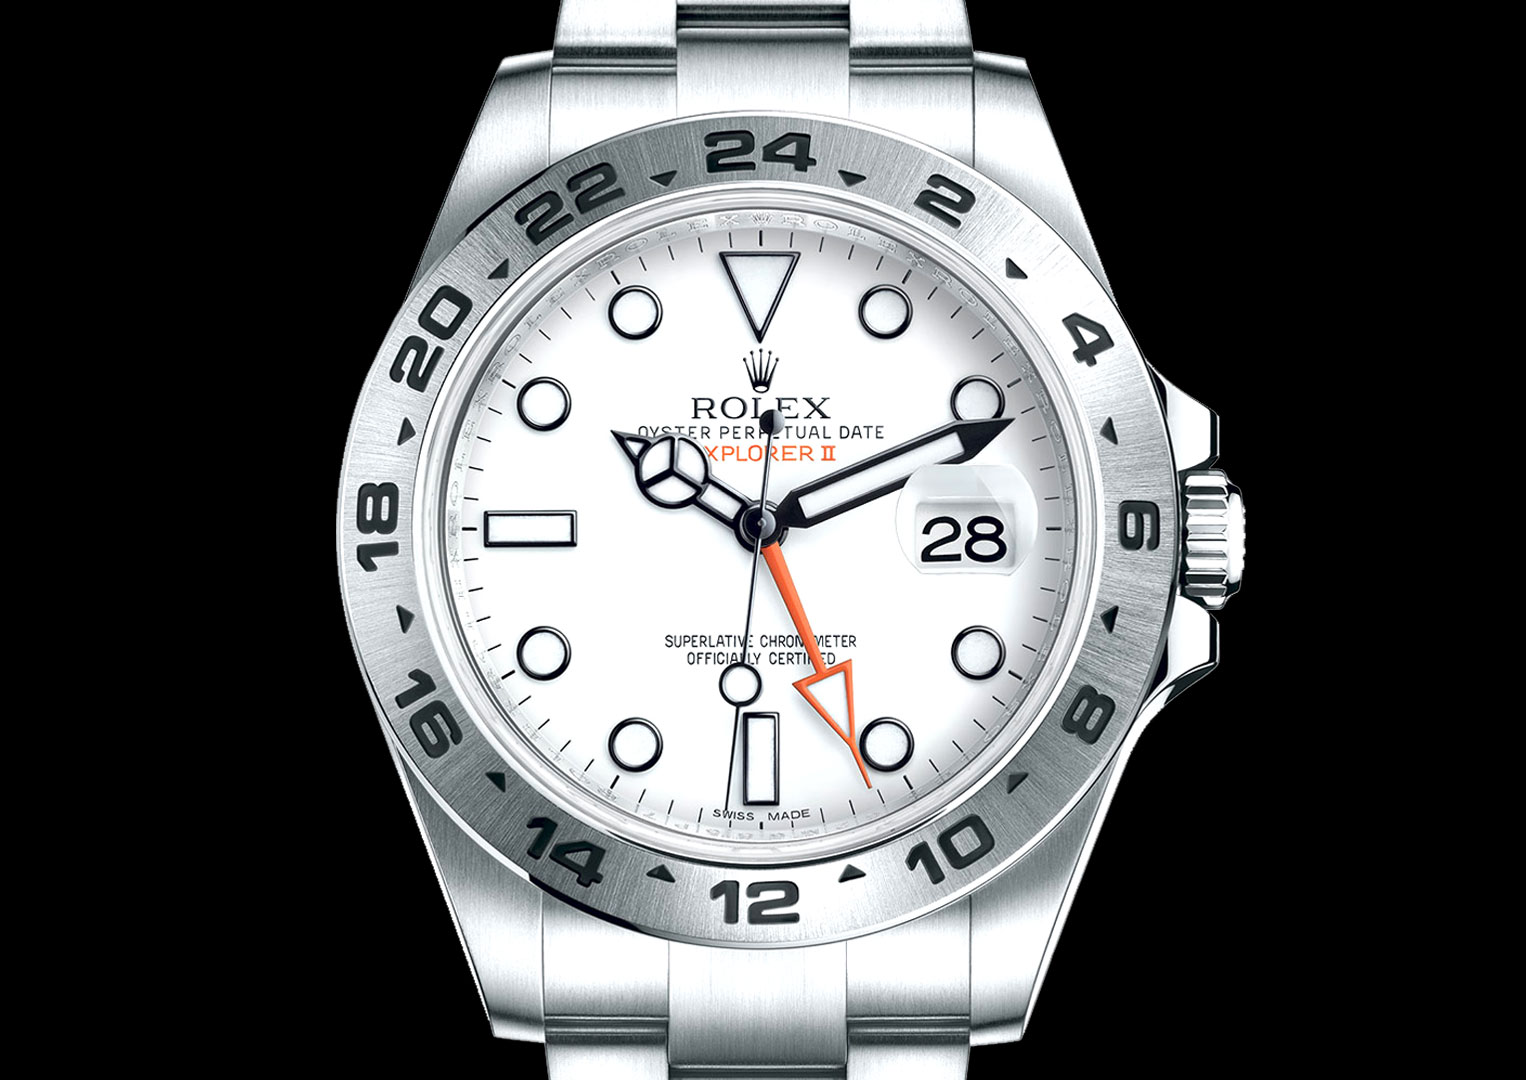 Look at any advert for a Rolex model with a date window and it'll be set to 28